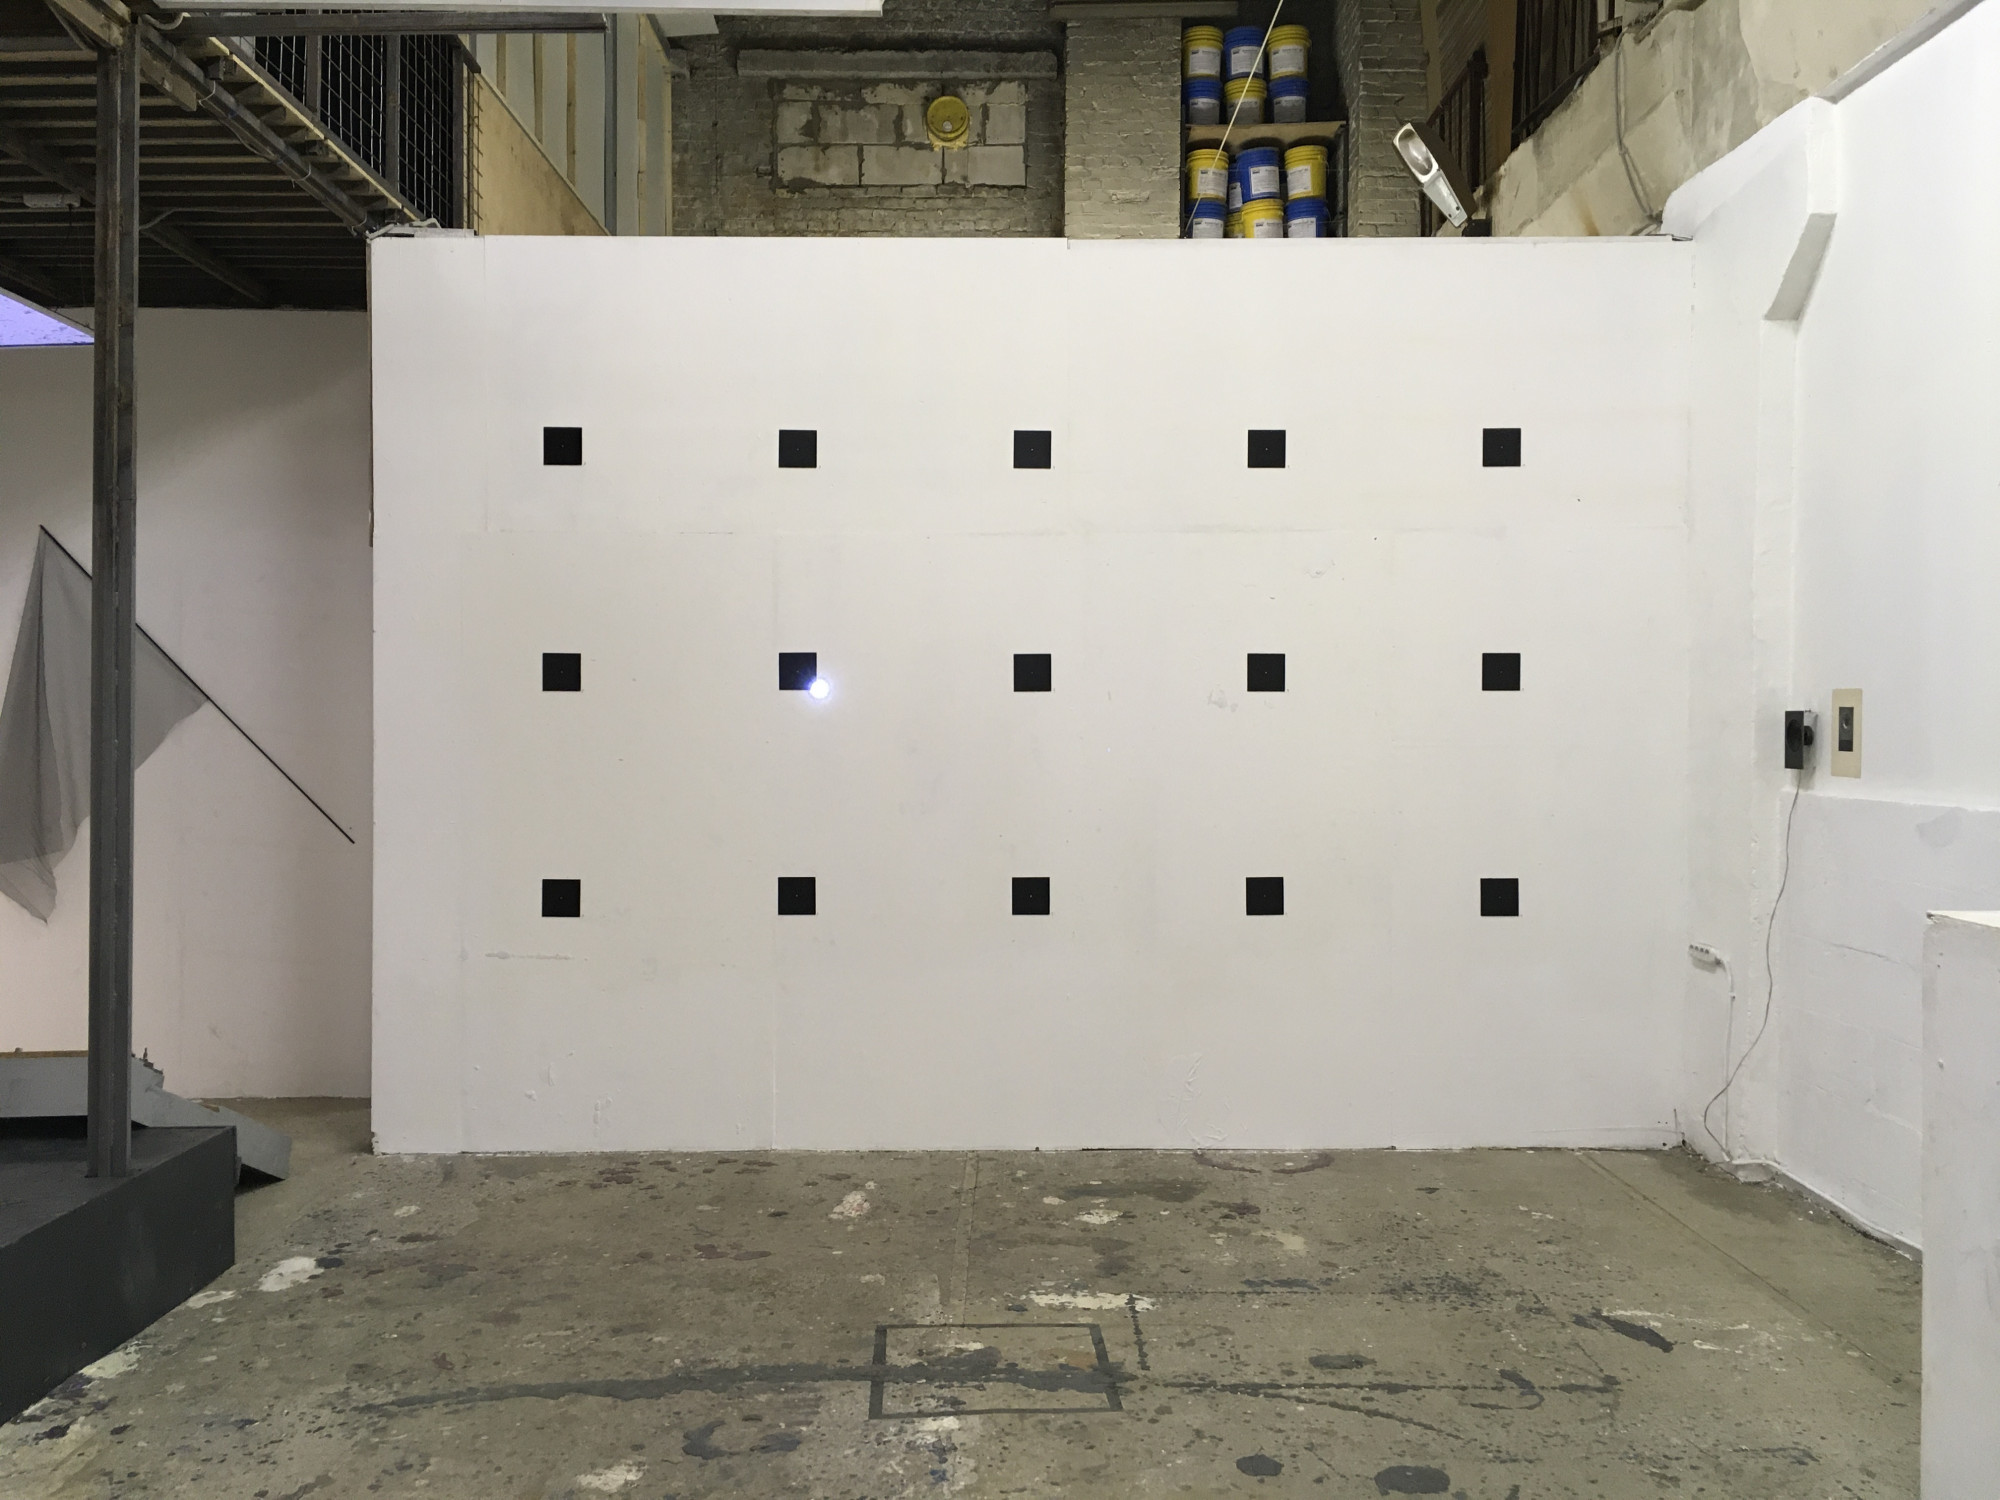 White Wall installation, 2019. Luda Gallery, St Petersburg. This work explores the whiteness of the gallery walls through sound